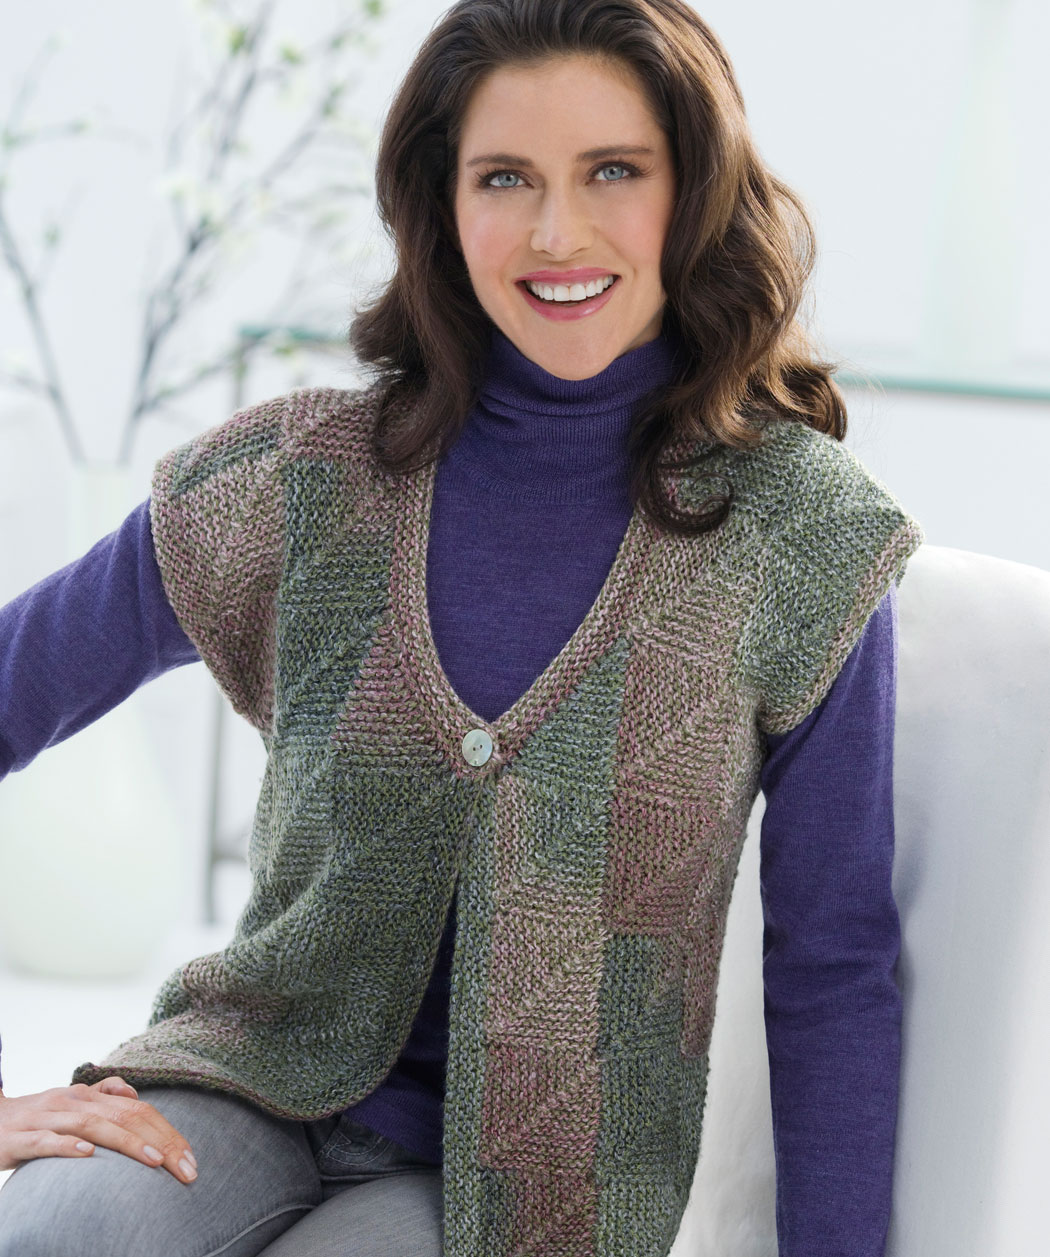 Ladies Knitting Patterns : Knitted Vest Patterns A Knitting Blog